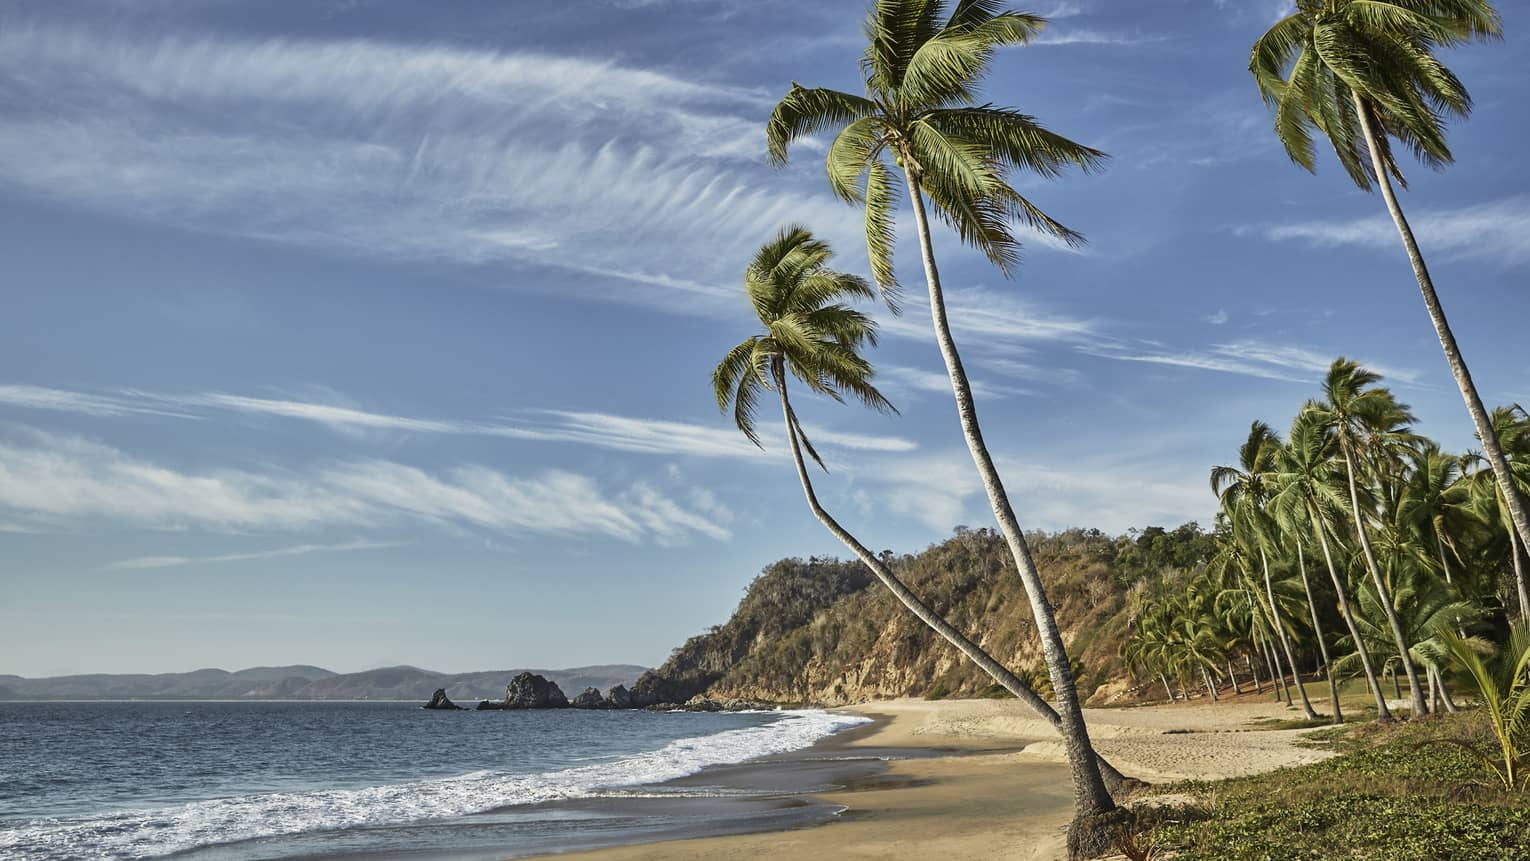 Sandy beach with tall palm trees in Tamarindo, Mexico